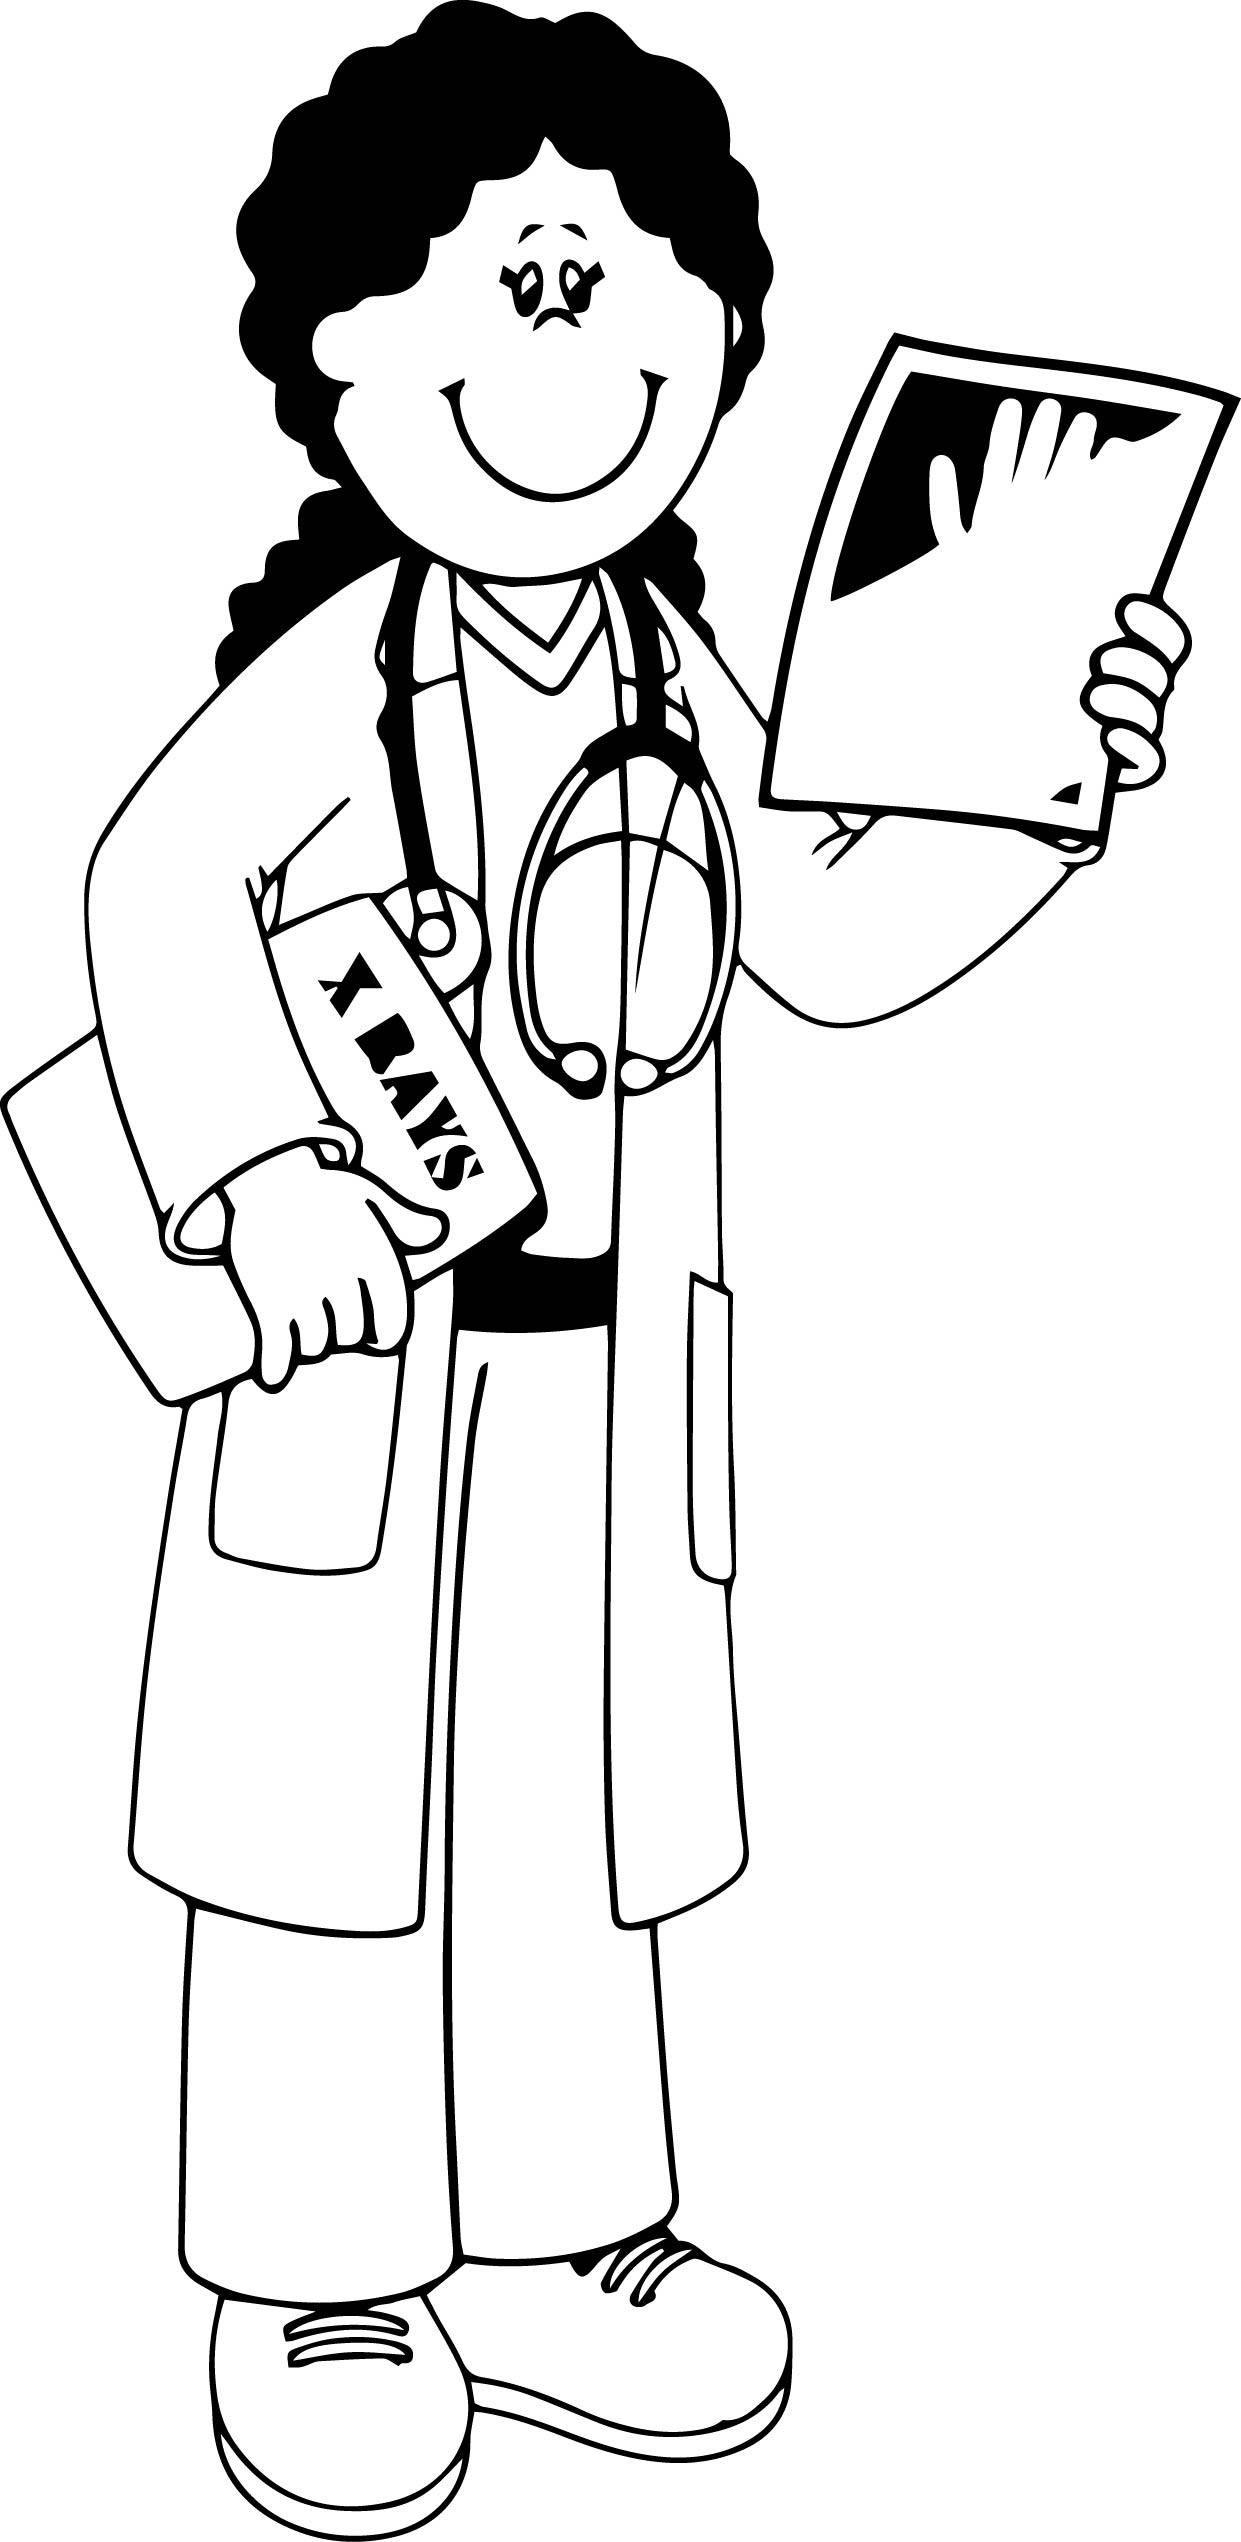 X ray coloring page - Community Helper X Ray Doctor Coloring Page